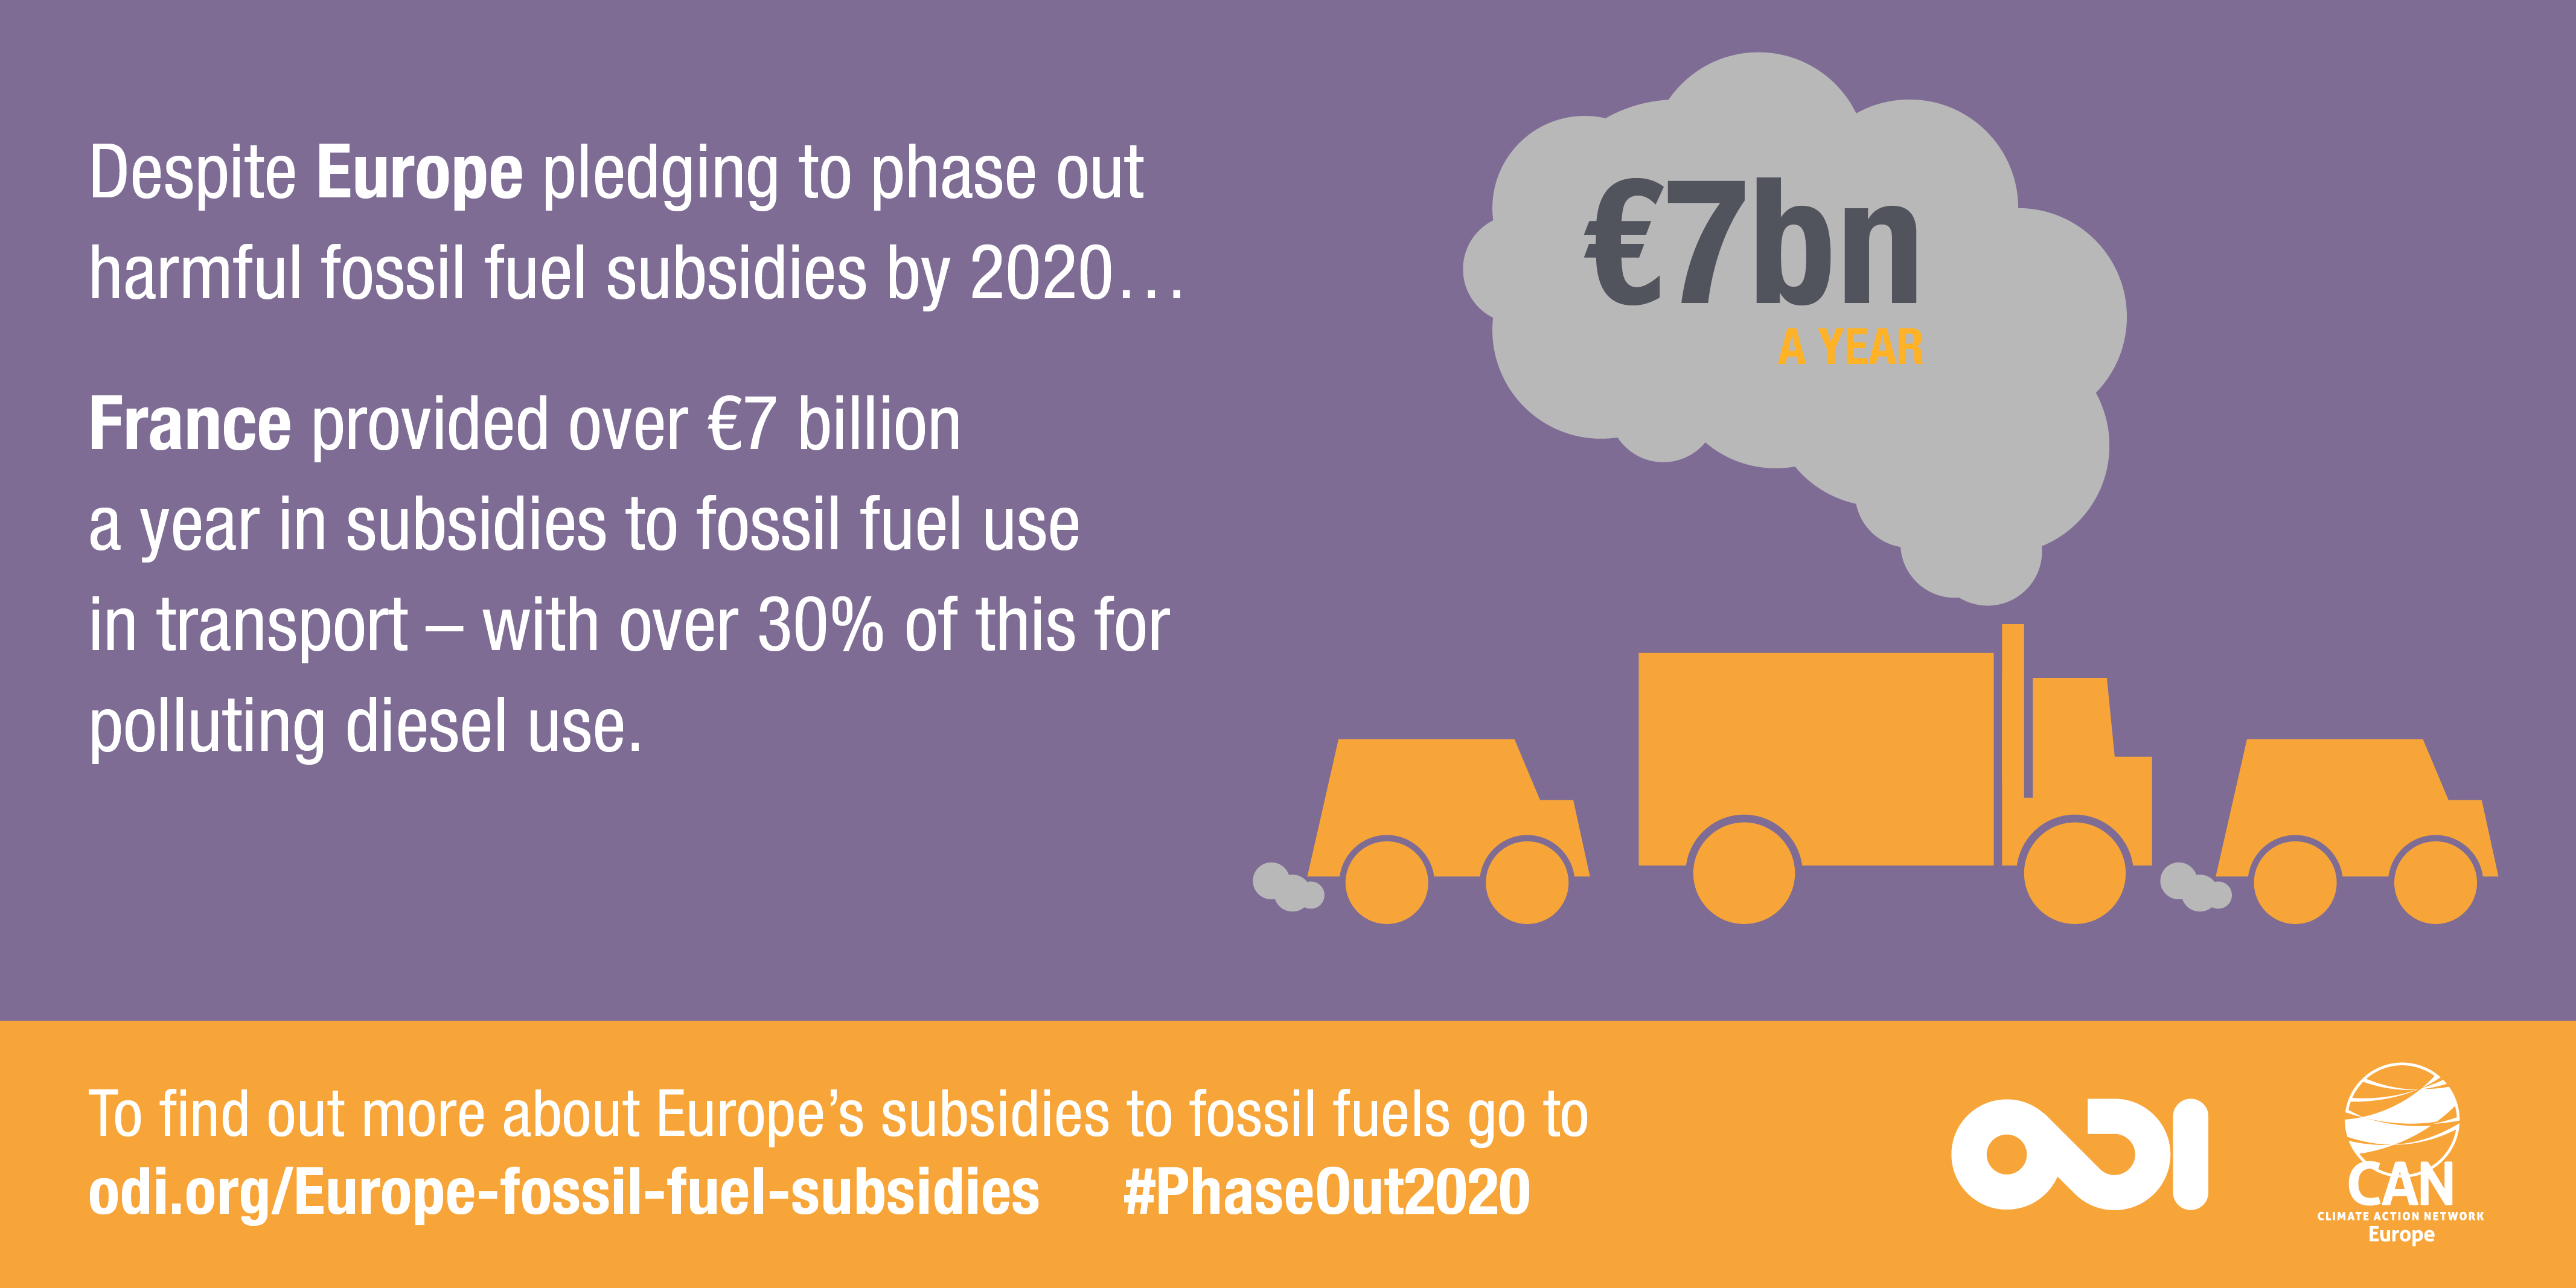 Infographic: France provided over €7 billion a year in subsidies to fossil fuel use in transport - with over 30% of this for polluting diesel use. ODI